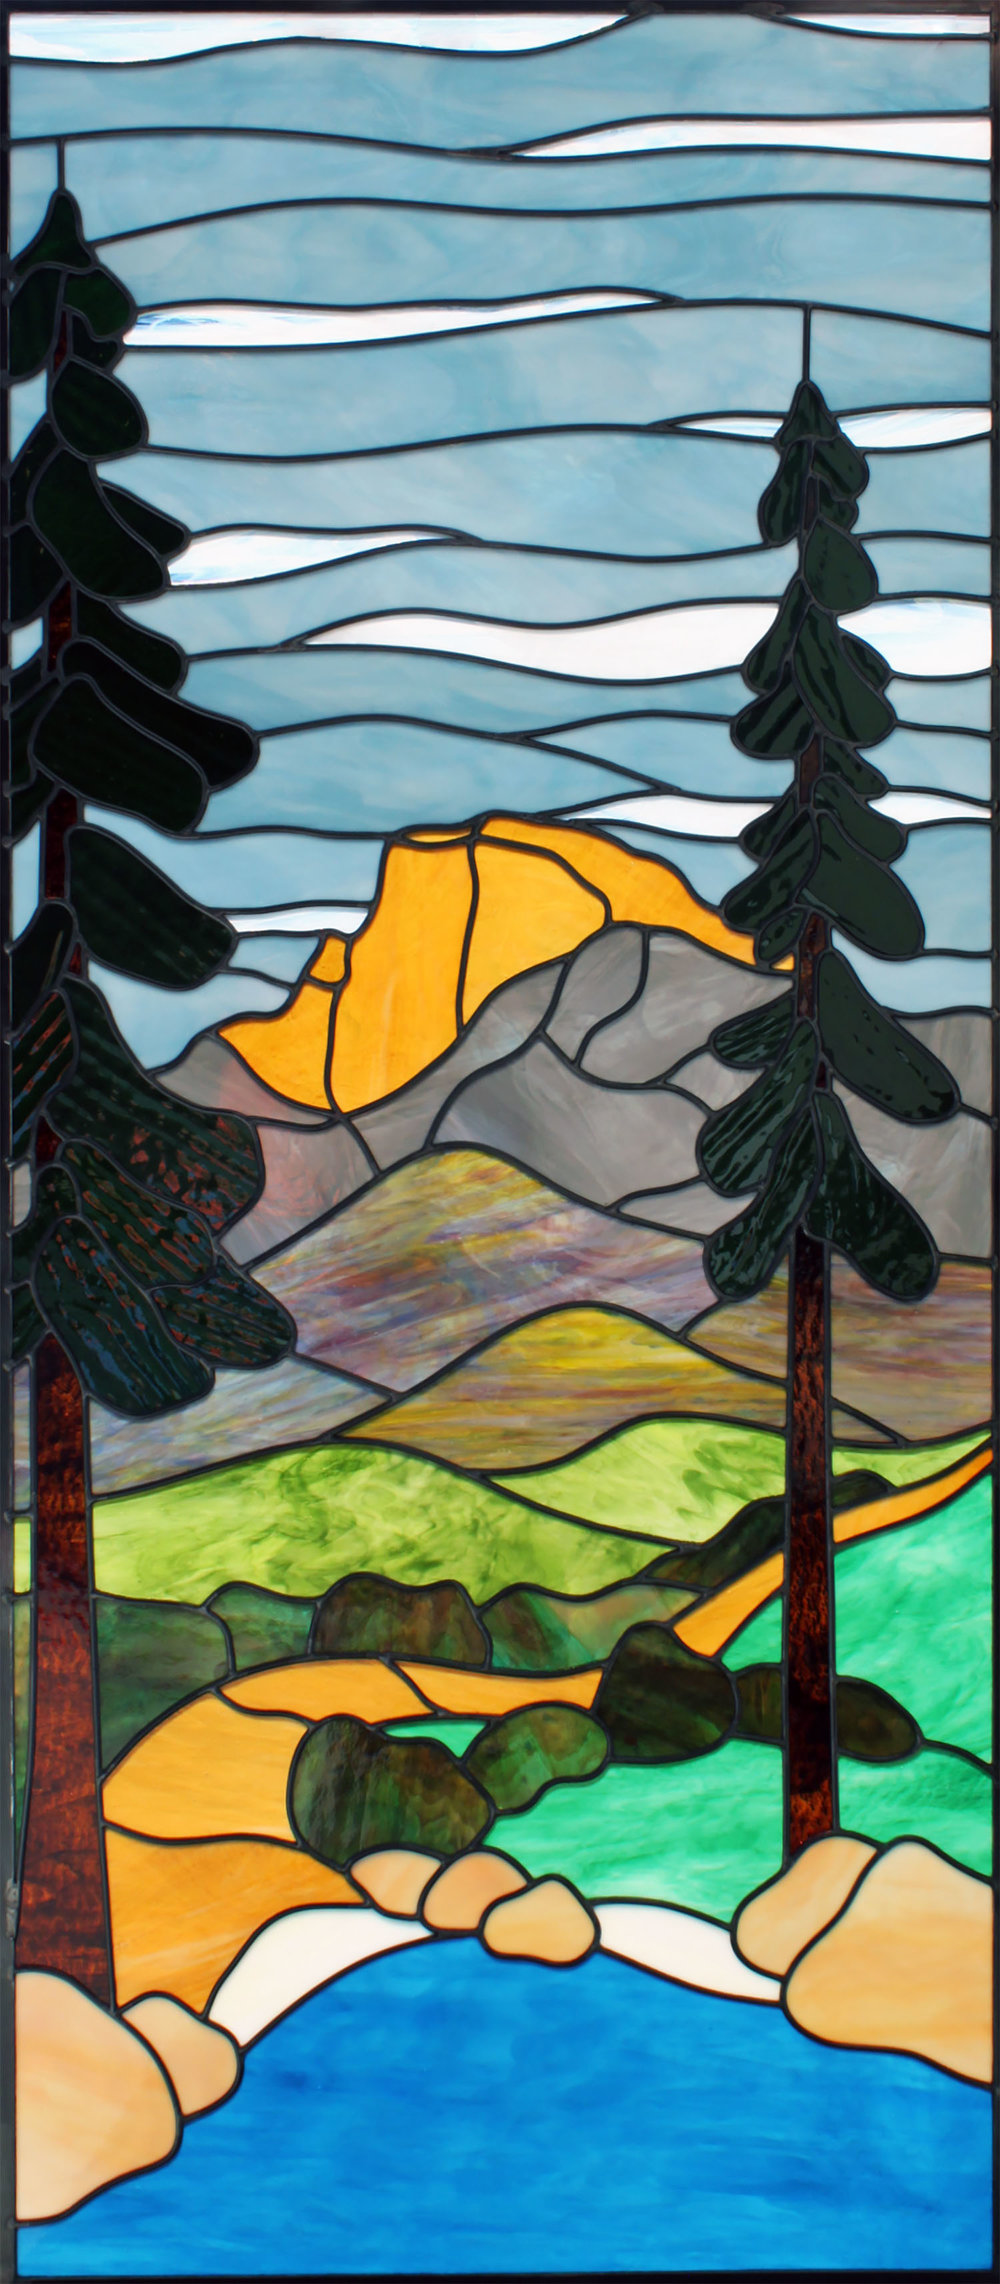 yosemite half dome redwood mountain scene leaded glass stained glass window studio palo alto atherton california san francisco san jose legacy glass.jpg